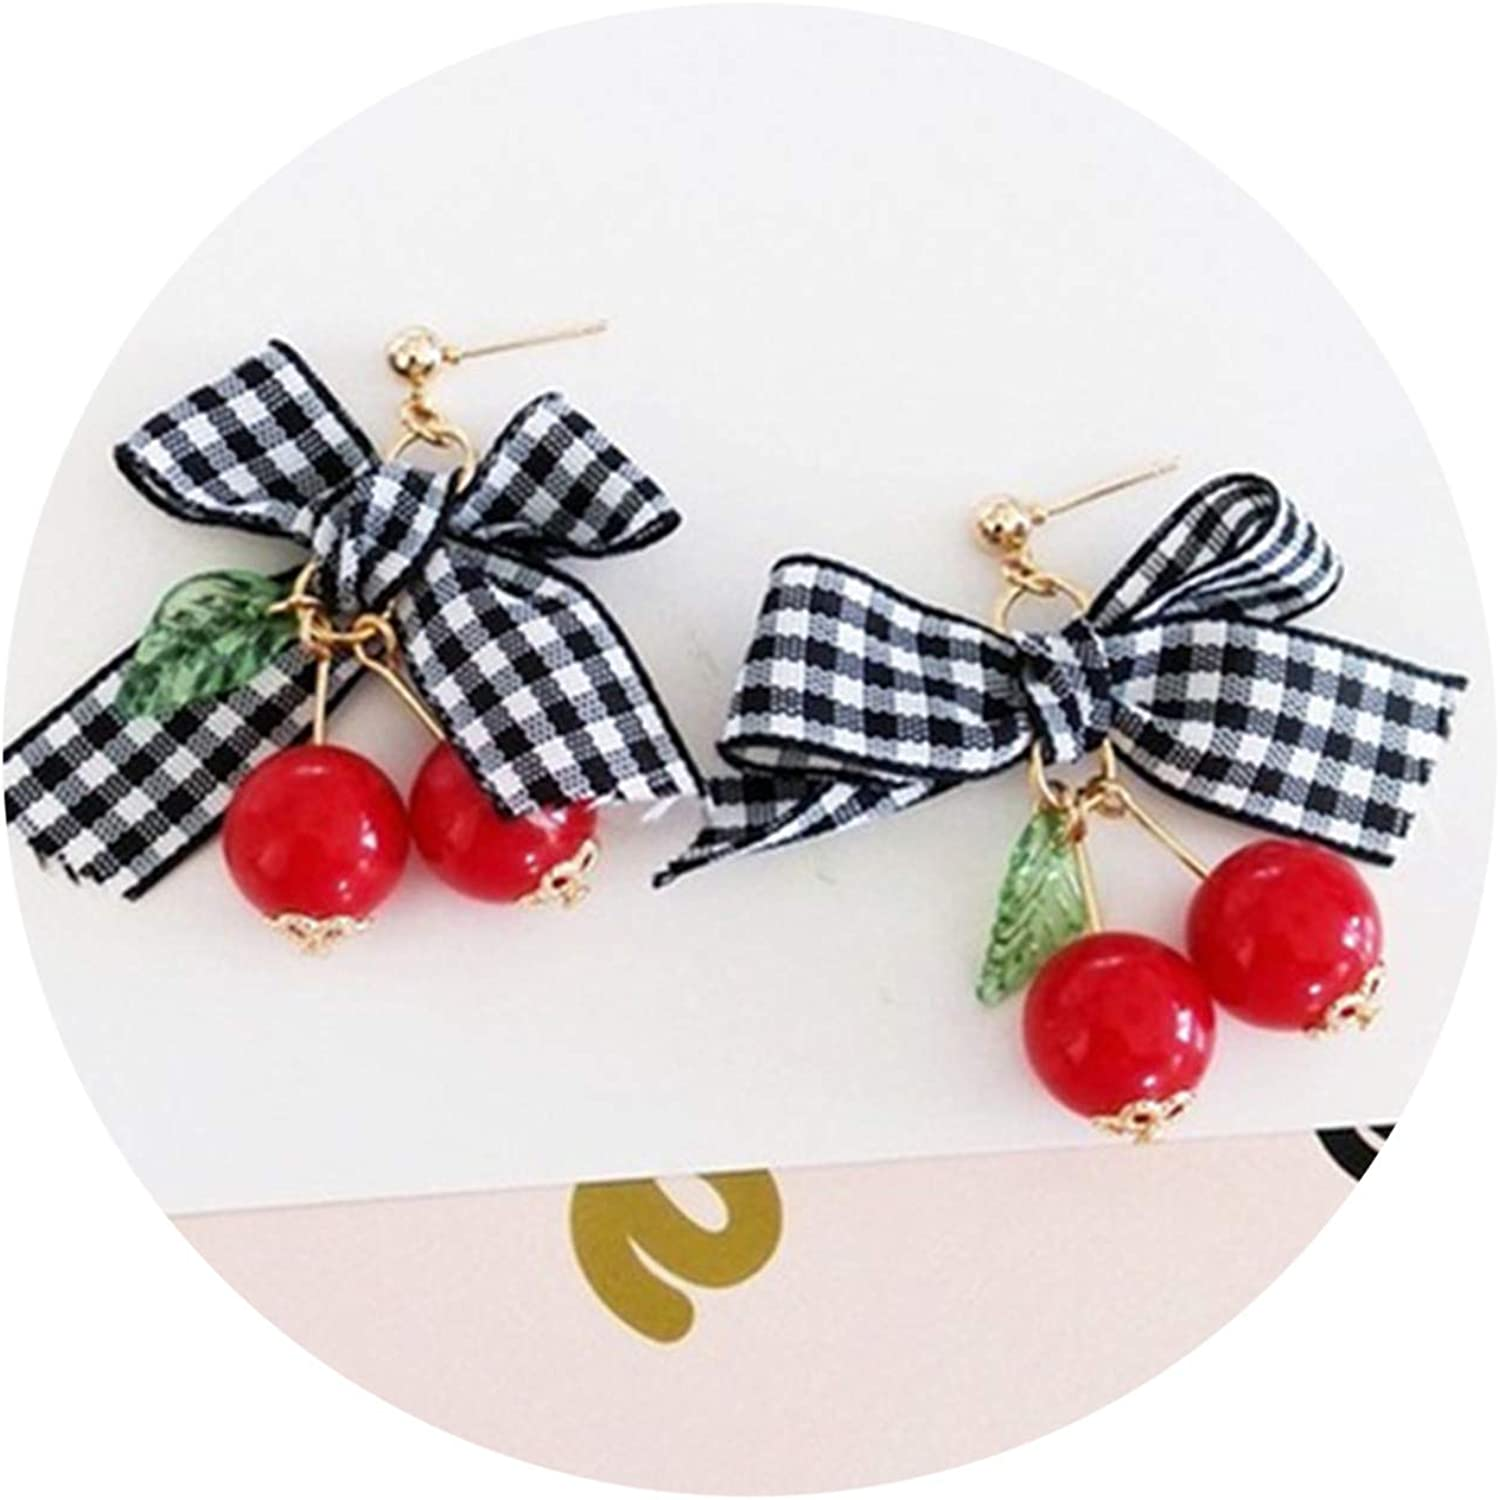 Fashion Woman Stud Earrings Fashionable Sweet Cherry Too Sweet Bowknot Earrings Cherry Earrings for Women